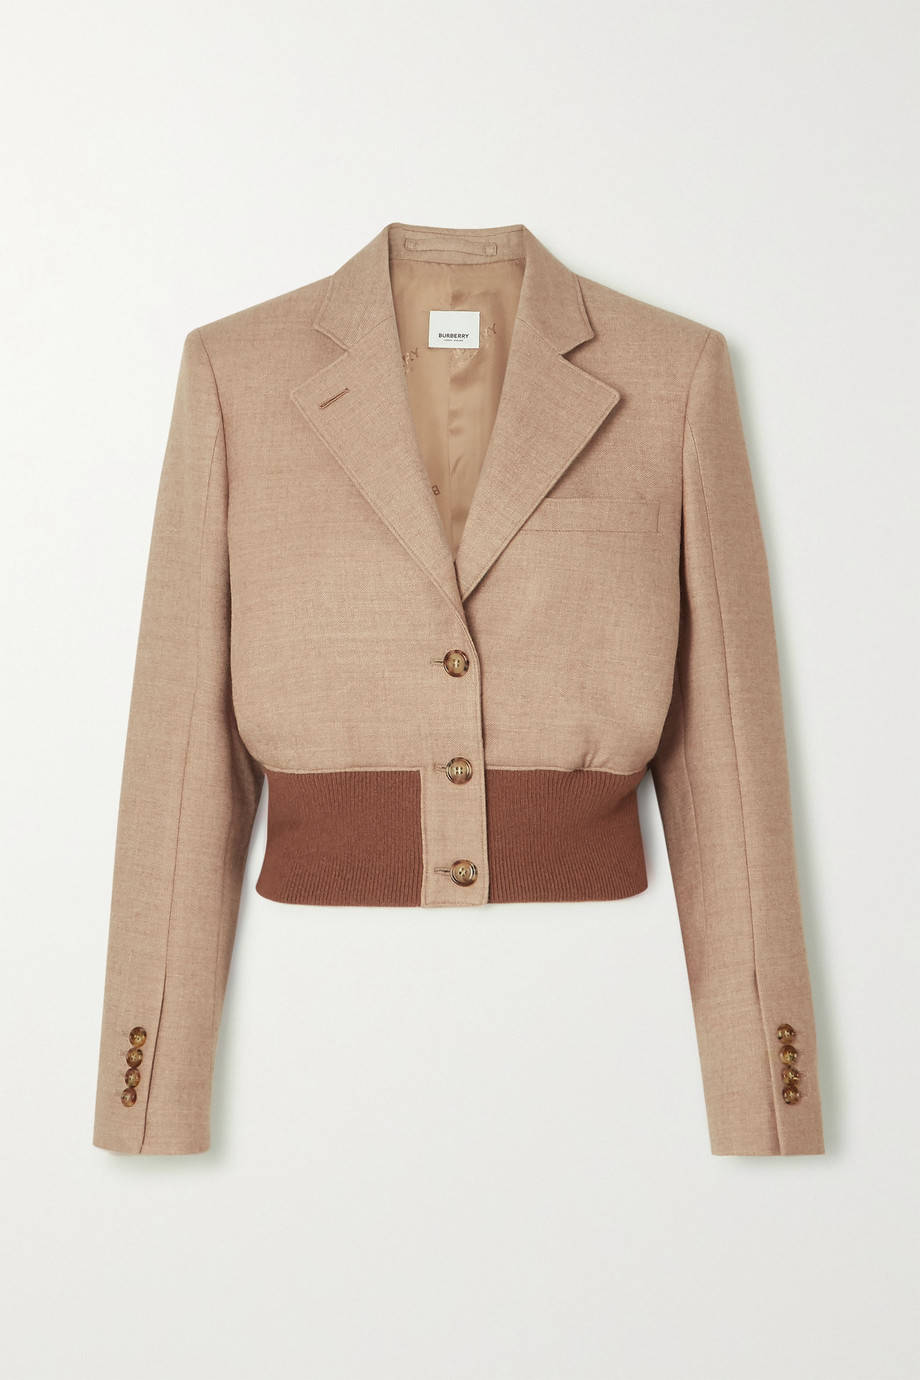 Burberry Cropped wool-blend and stretch-knit blazer